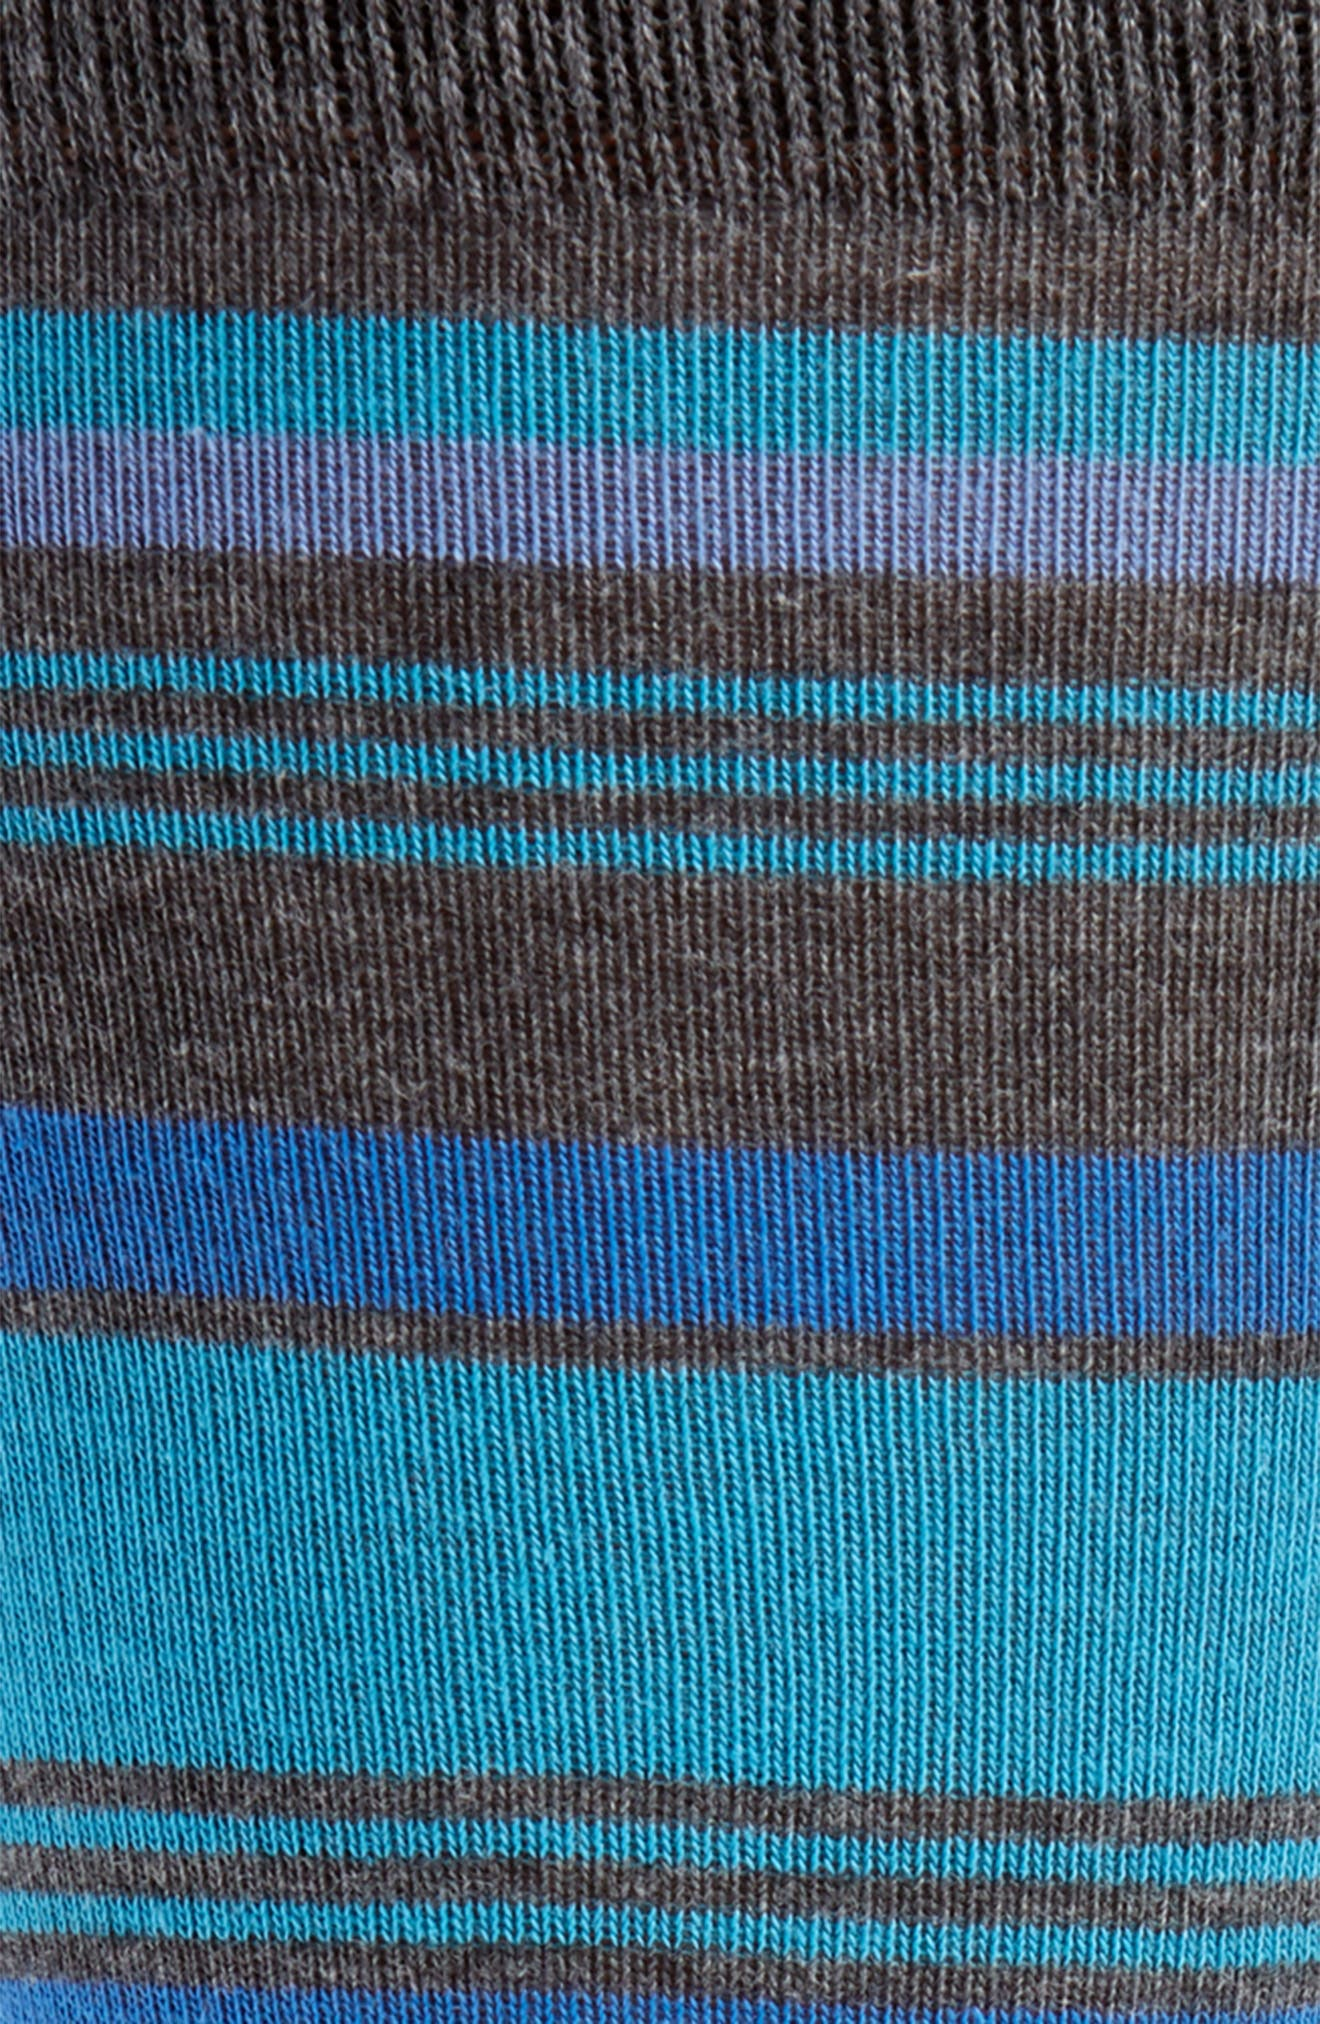 Mixed Uneven Stripe Socks,                             Alternate thumbnail 2, color,                             Blue/ Charcoal